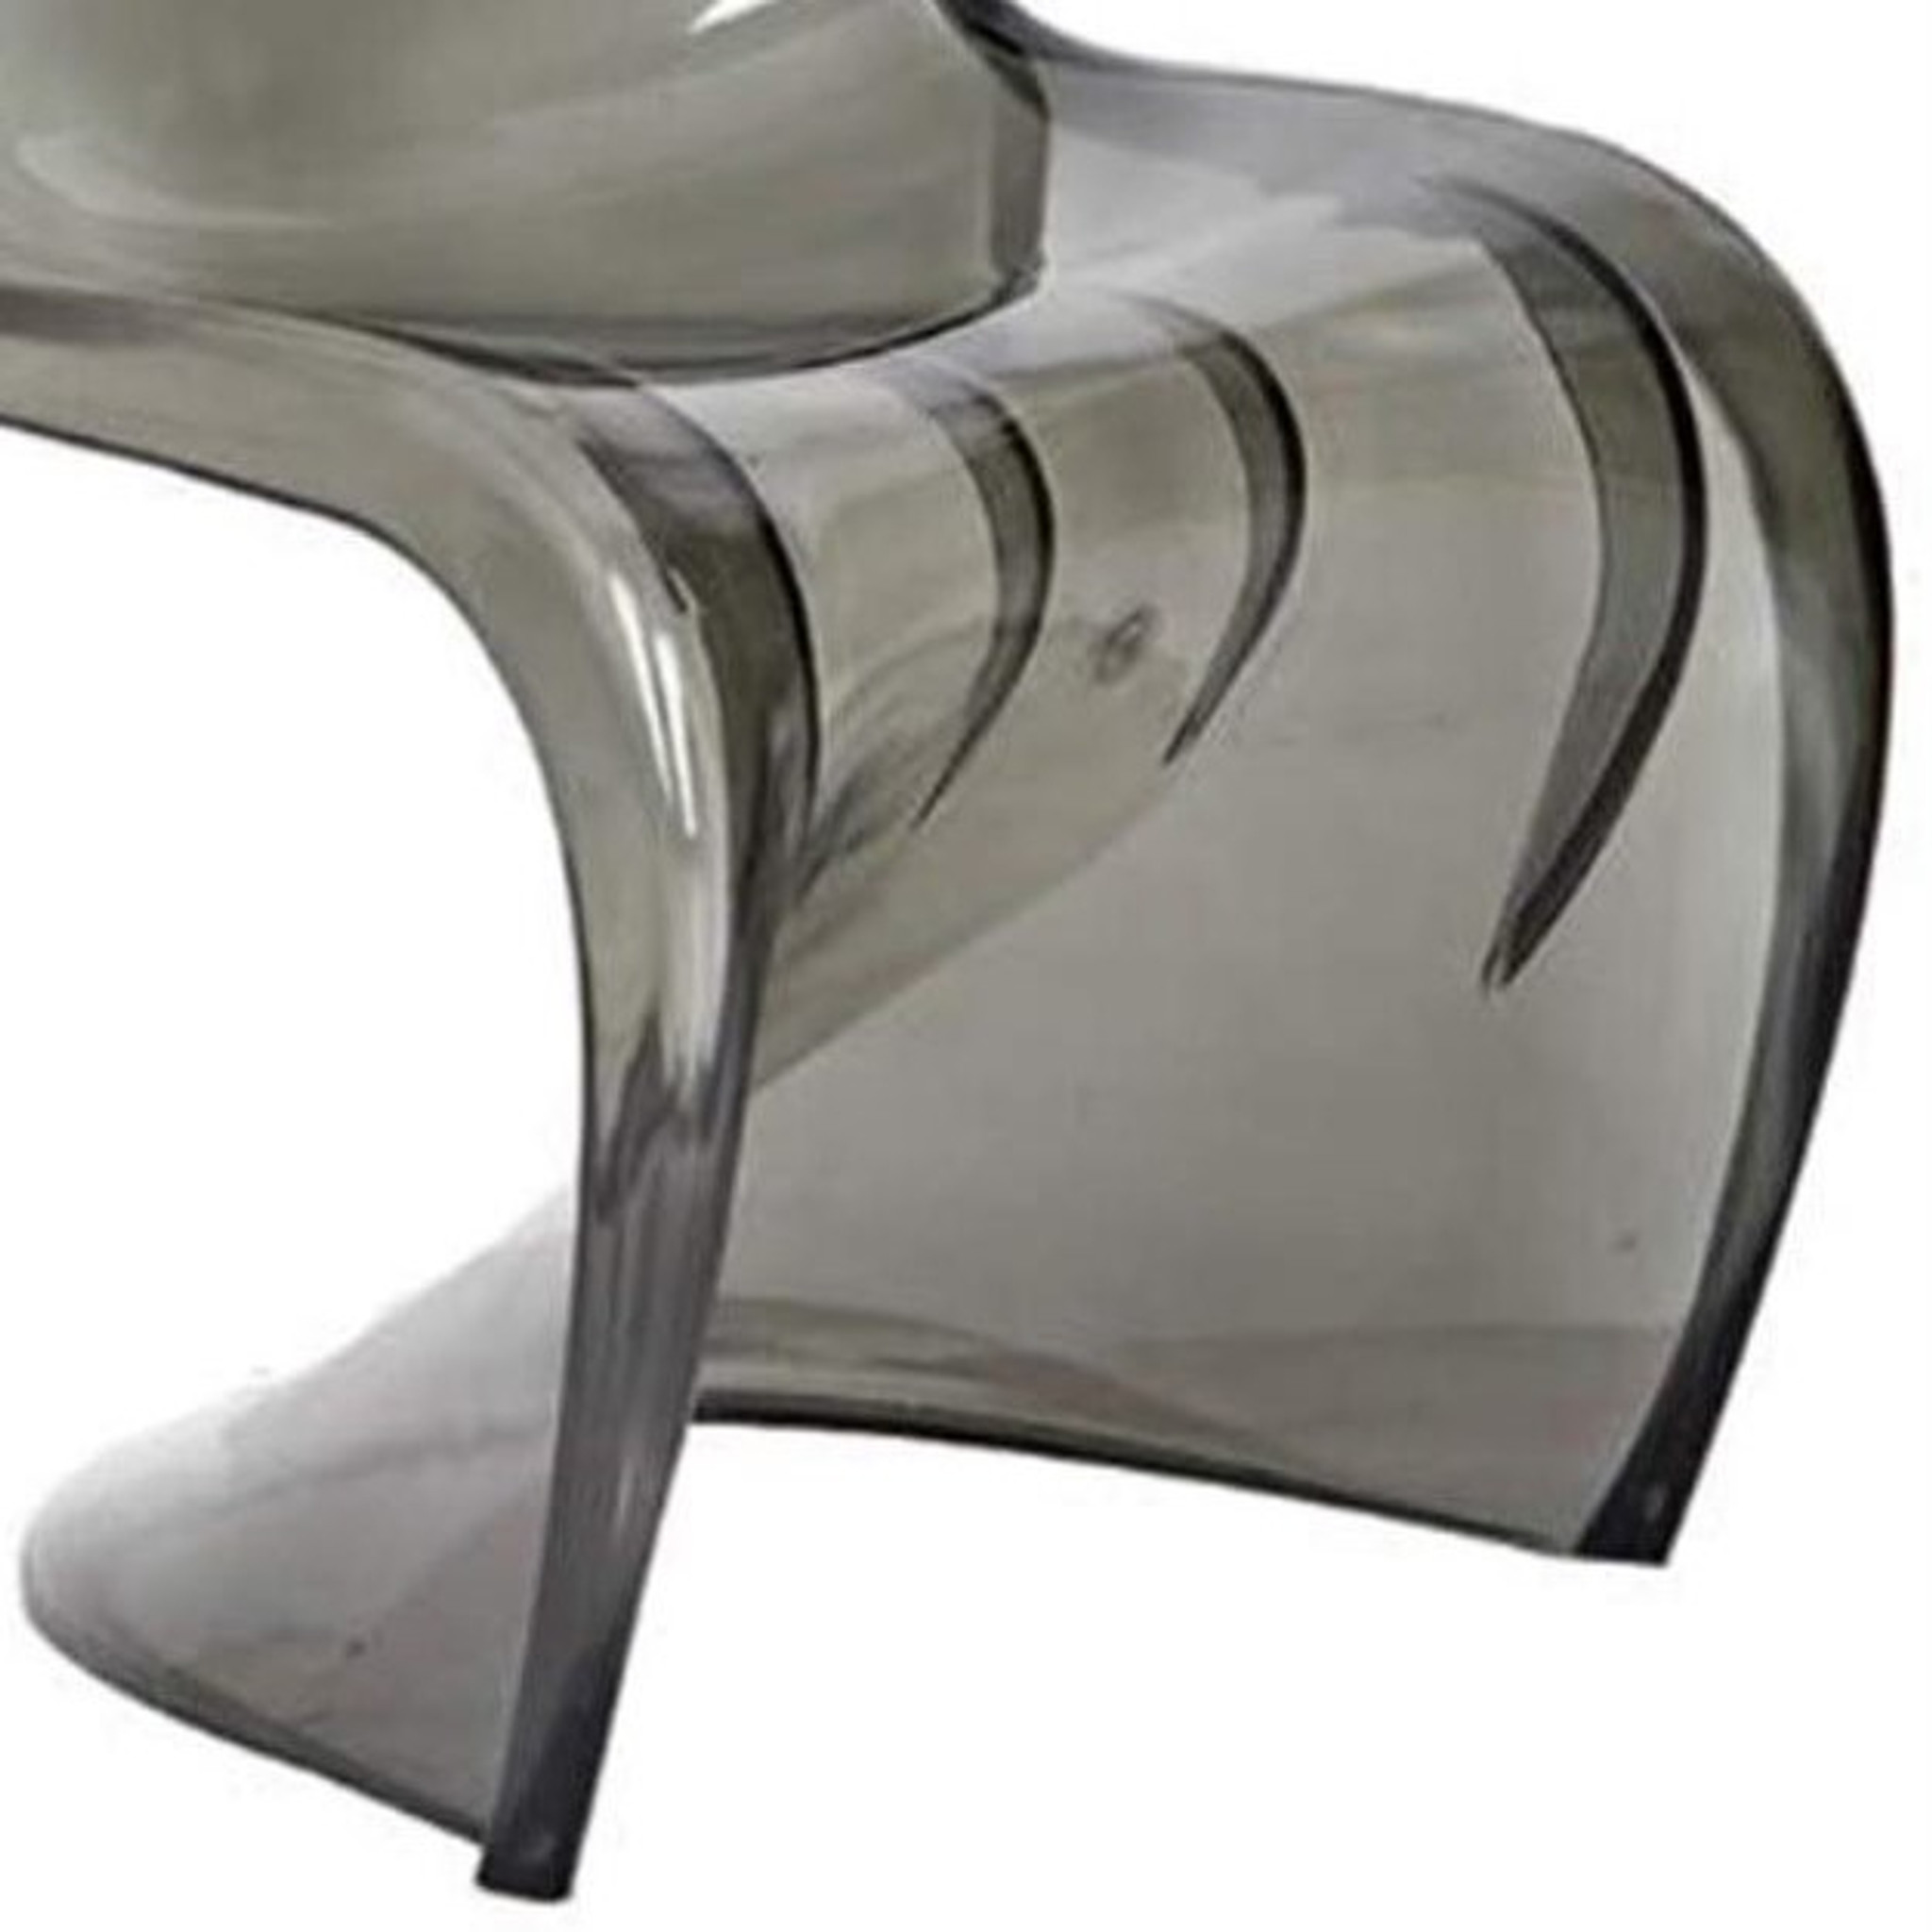 sheer transparent grey acrylic lucite s shape dining office desk side chair